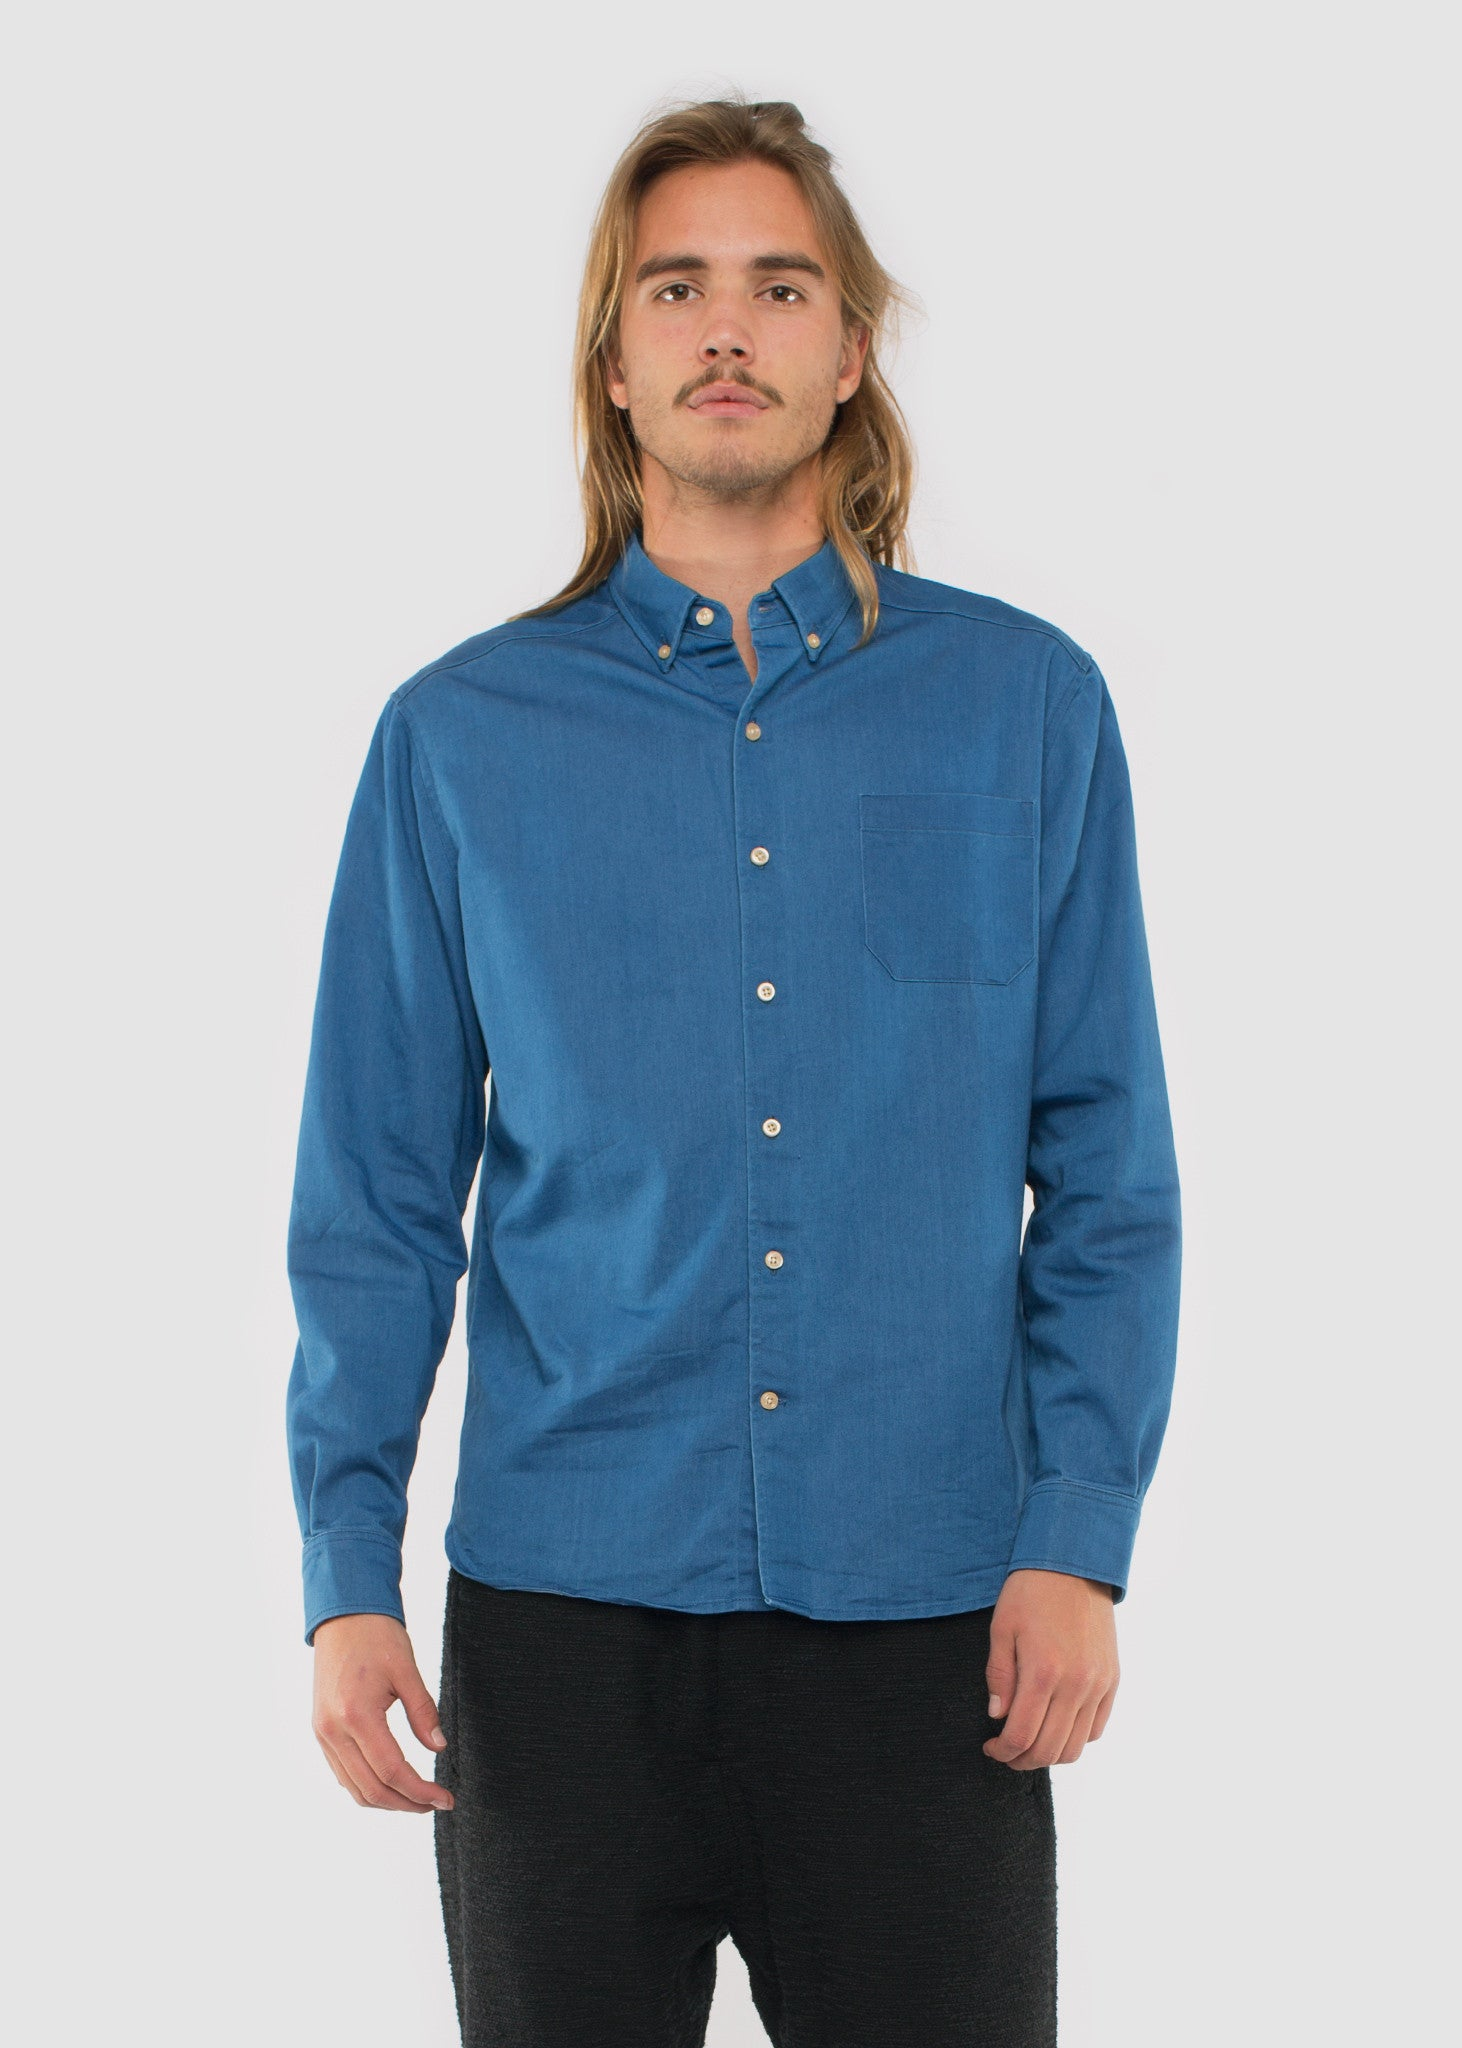 TWR Denim Shirts Mid